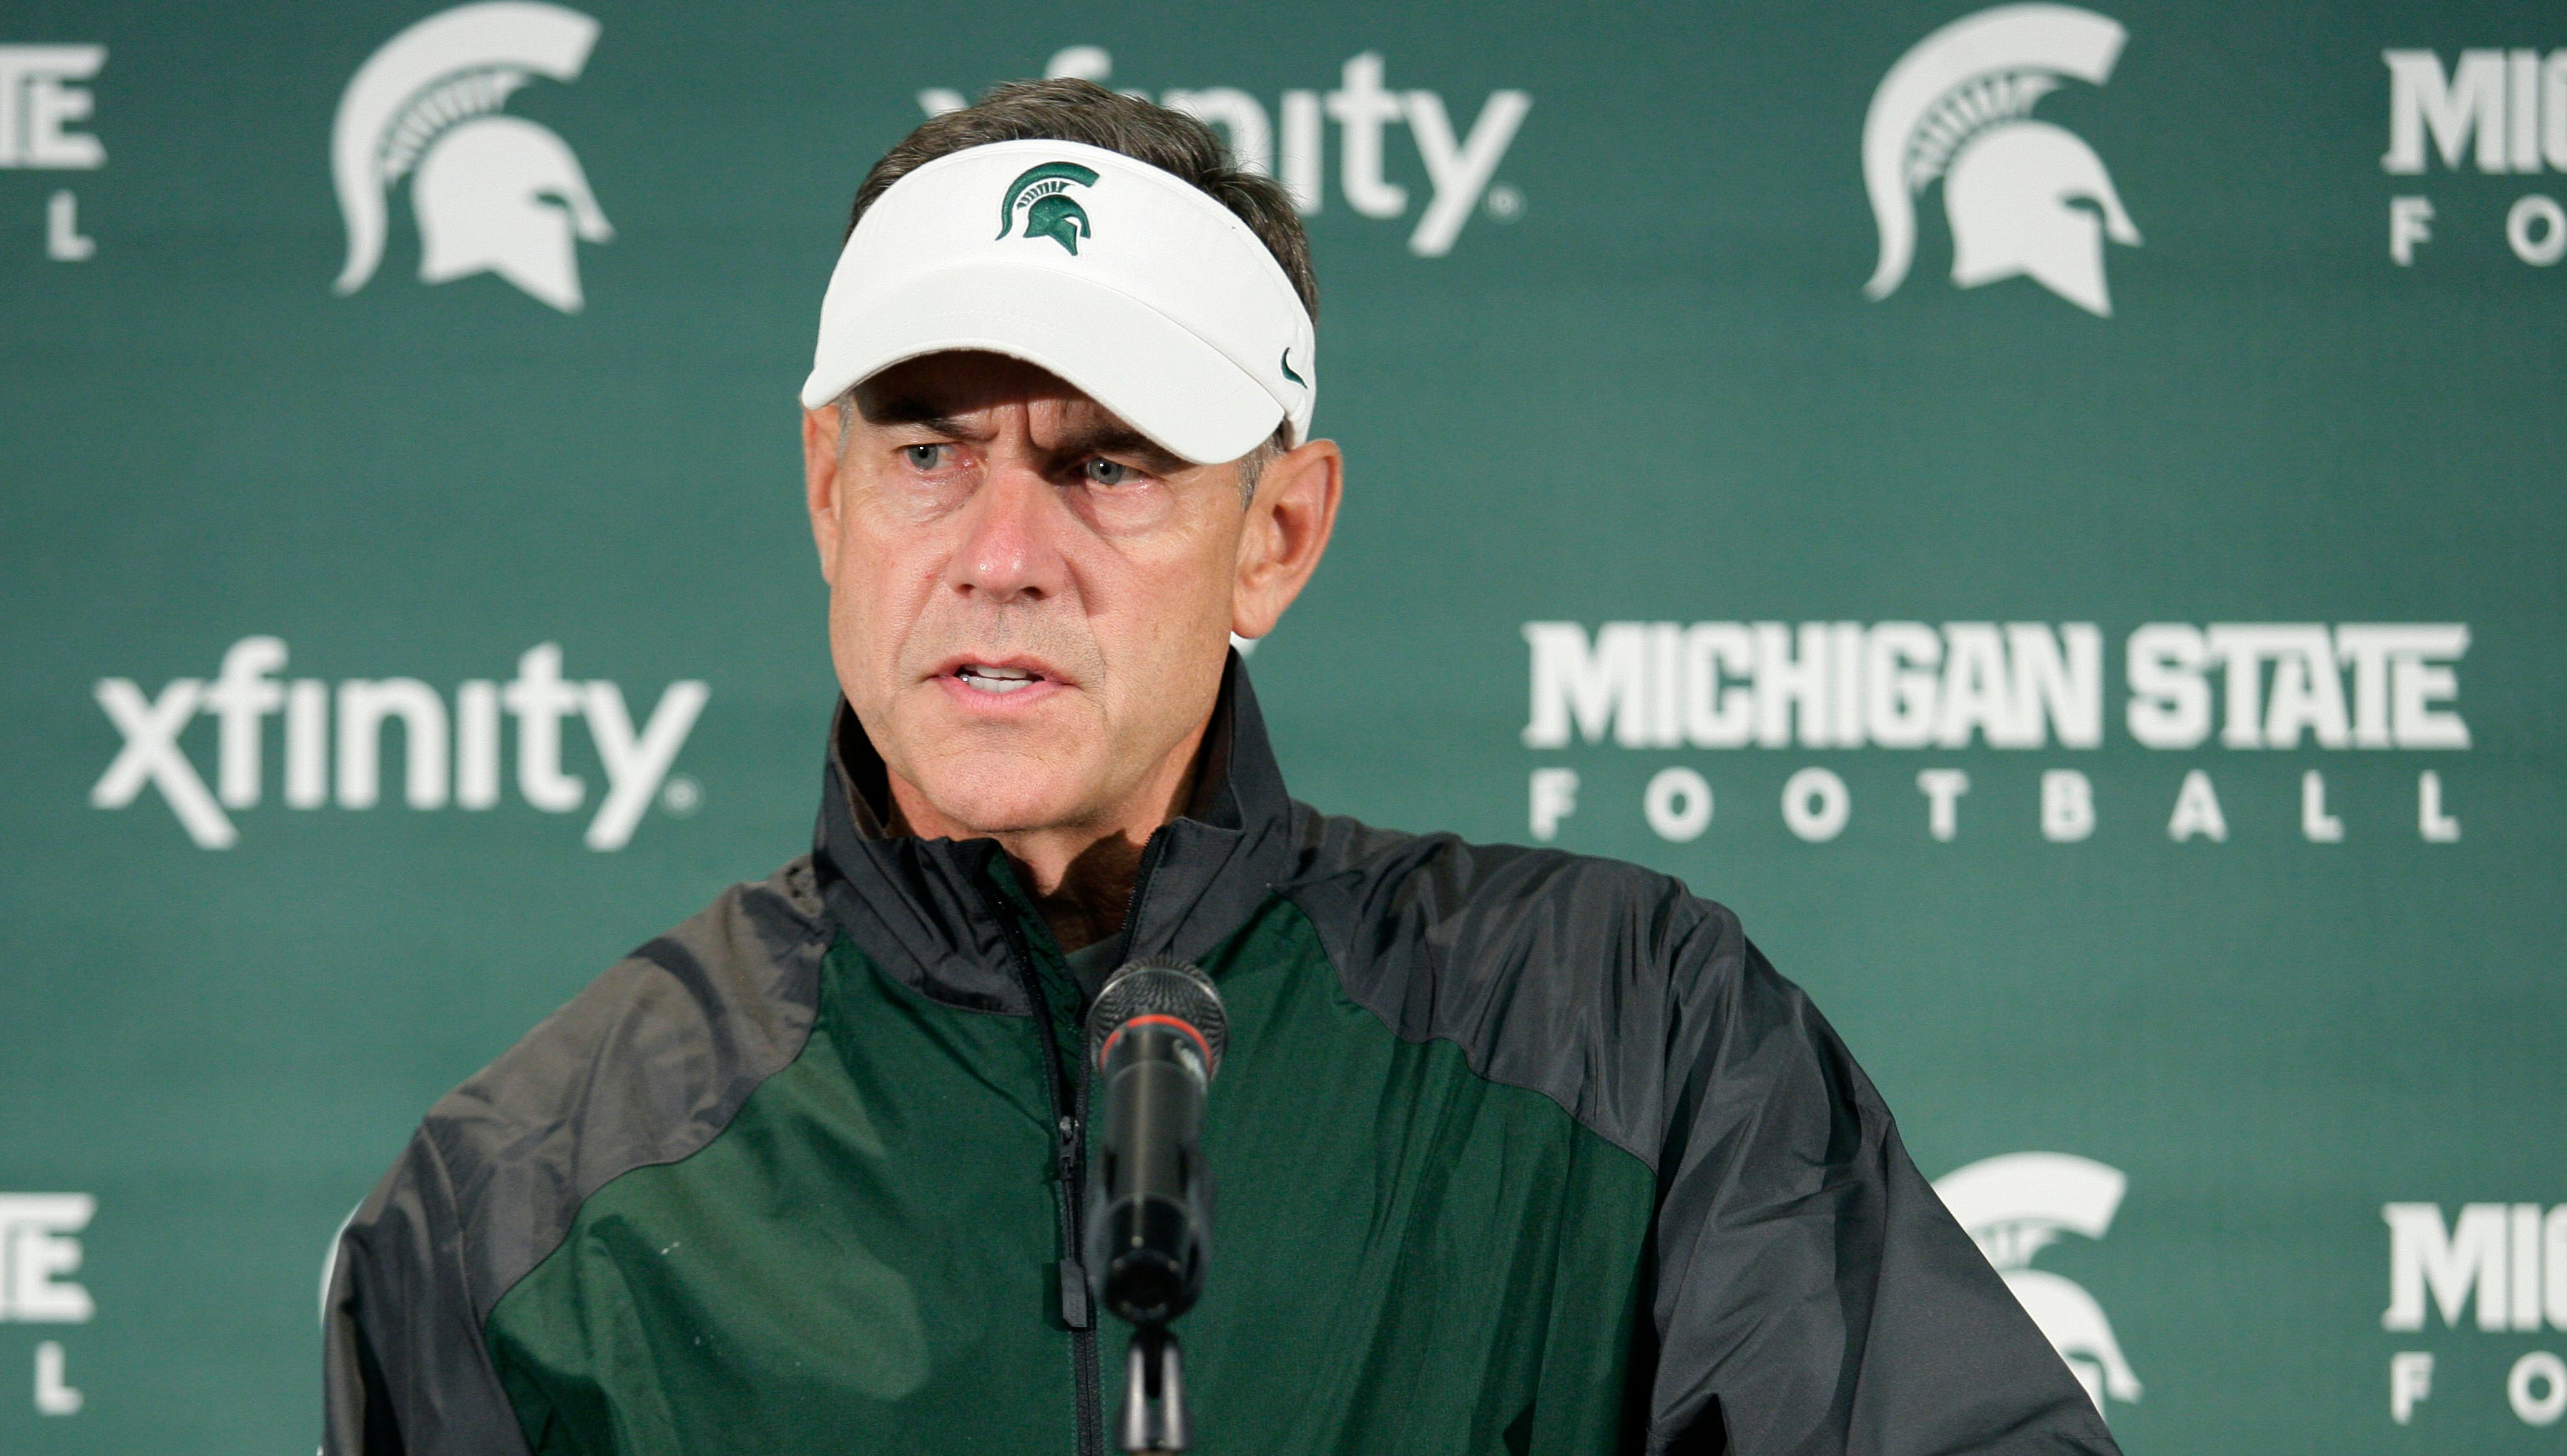 27. Michigan State: The Spartans continue to house one of the nation's best defenses, a group more than good enough to lift this team to the Rose Bowl. To rebound from last season's disappointing seven-win finish, Michigan State must land more production from quarterback Andrew Maxwell and a stable of four or five backs battling to replace Le'Veon Bell.